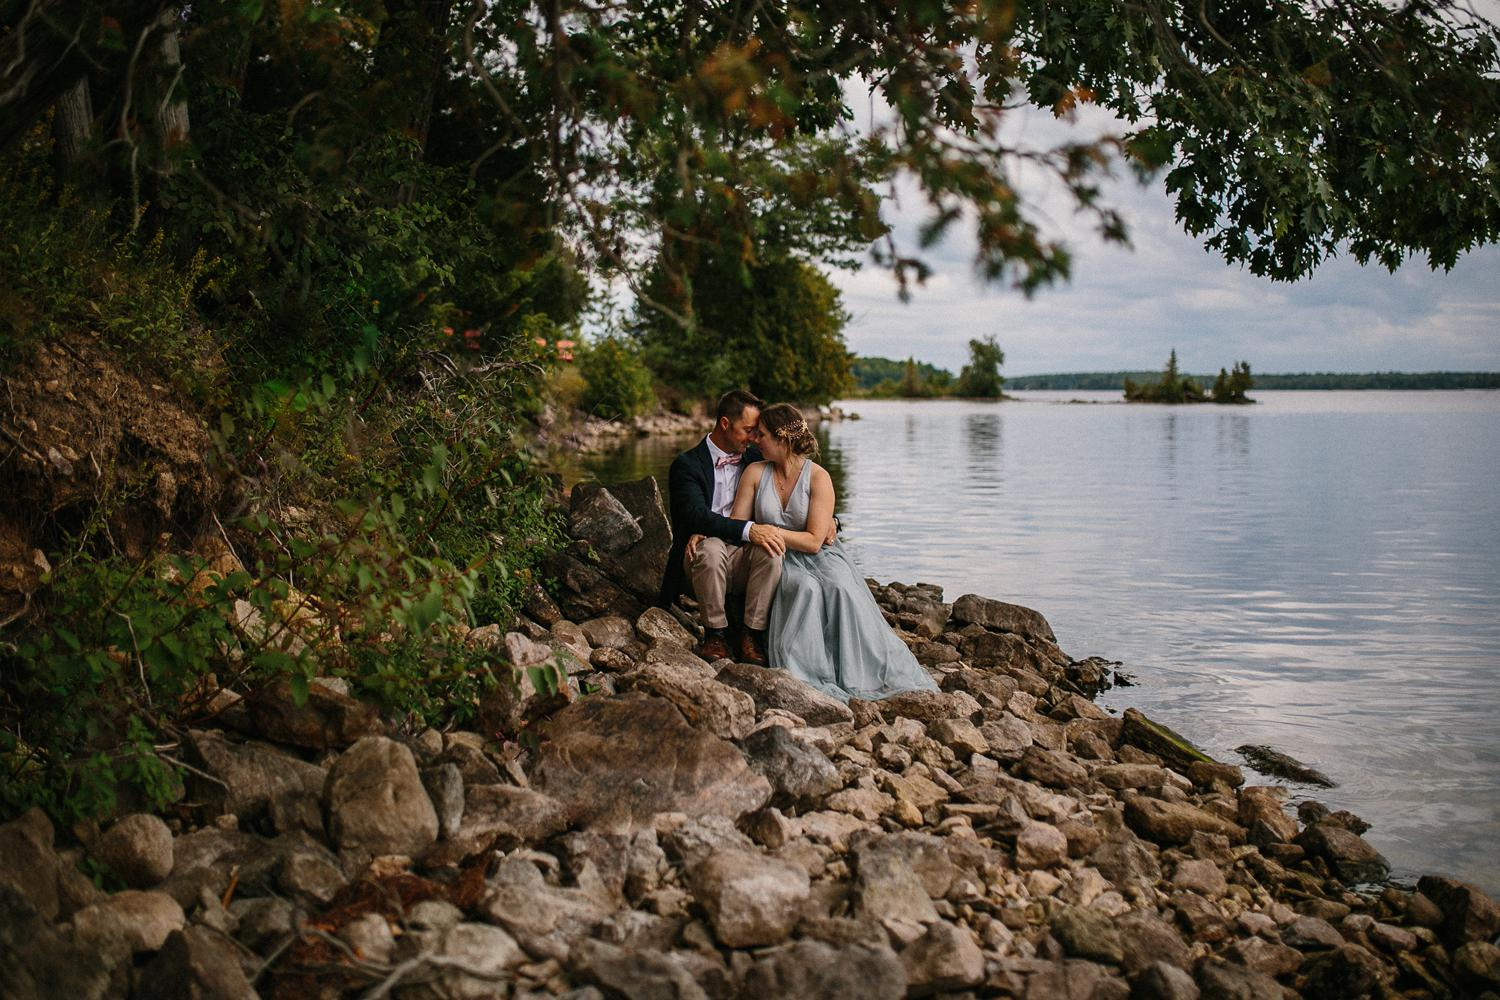 kerry ford photography - small intimate backyard rideau lake island wedding perth ontario-135.jpg